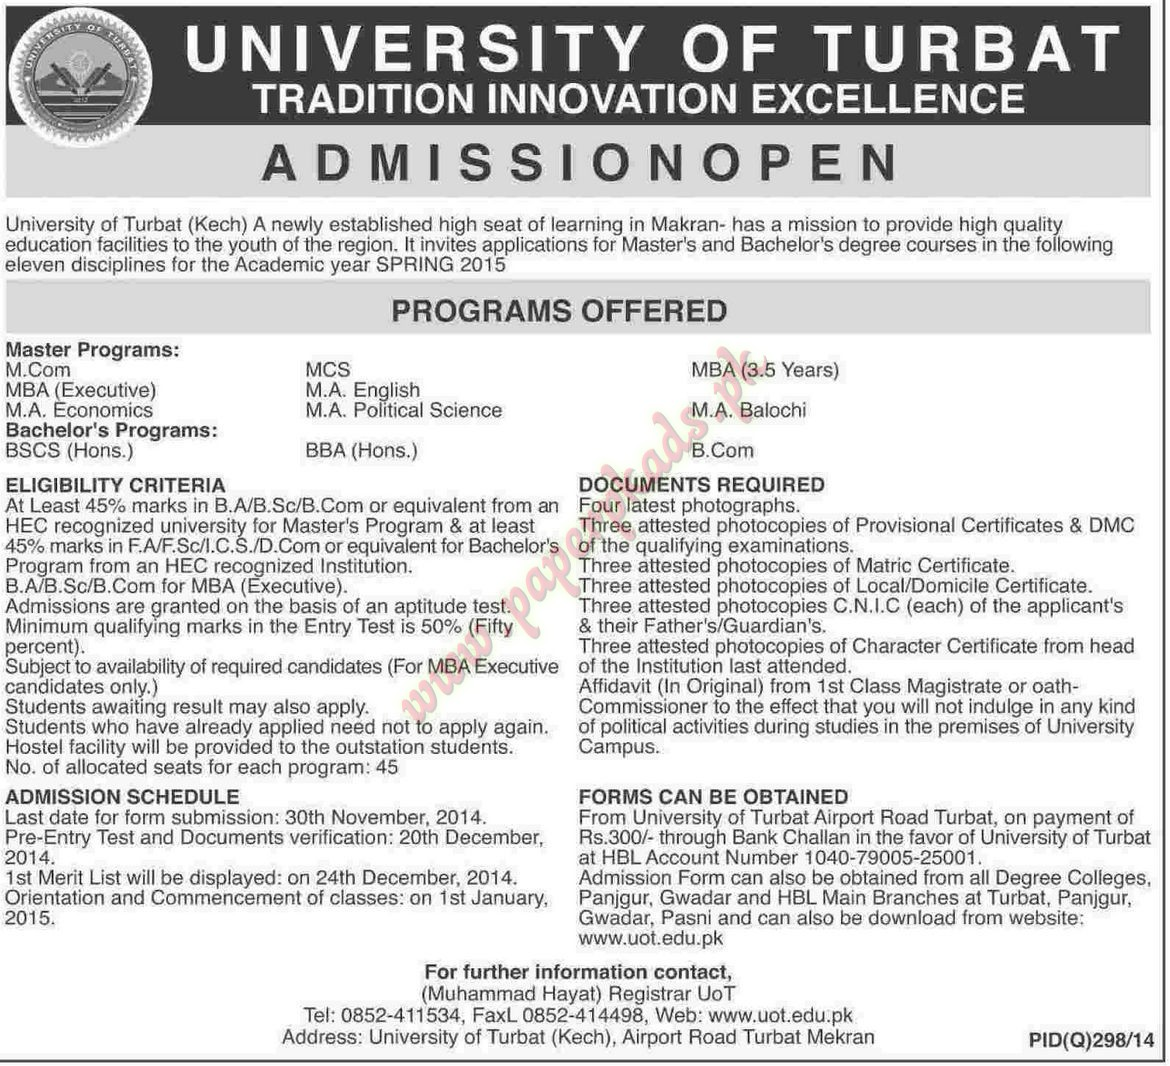 Admissions Open - University of Turbat - Dawn 31 October 2014